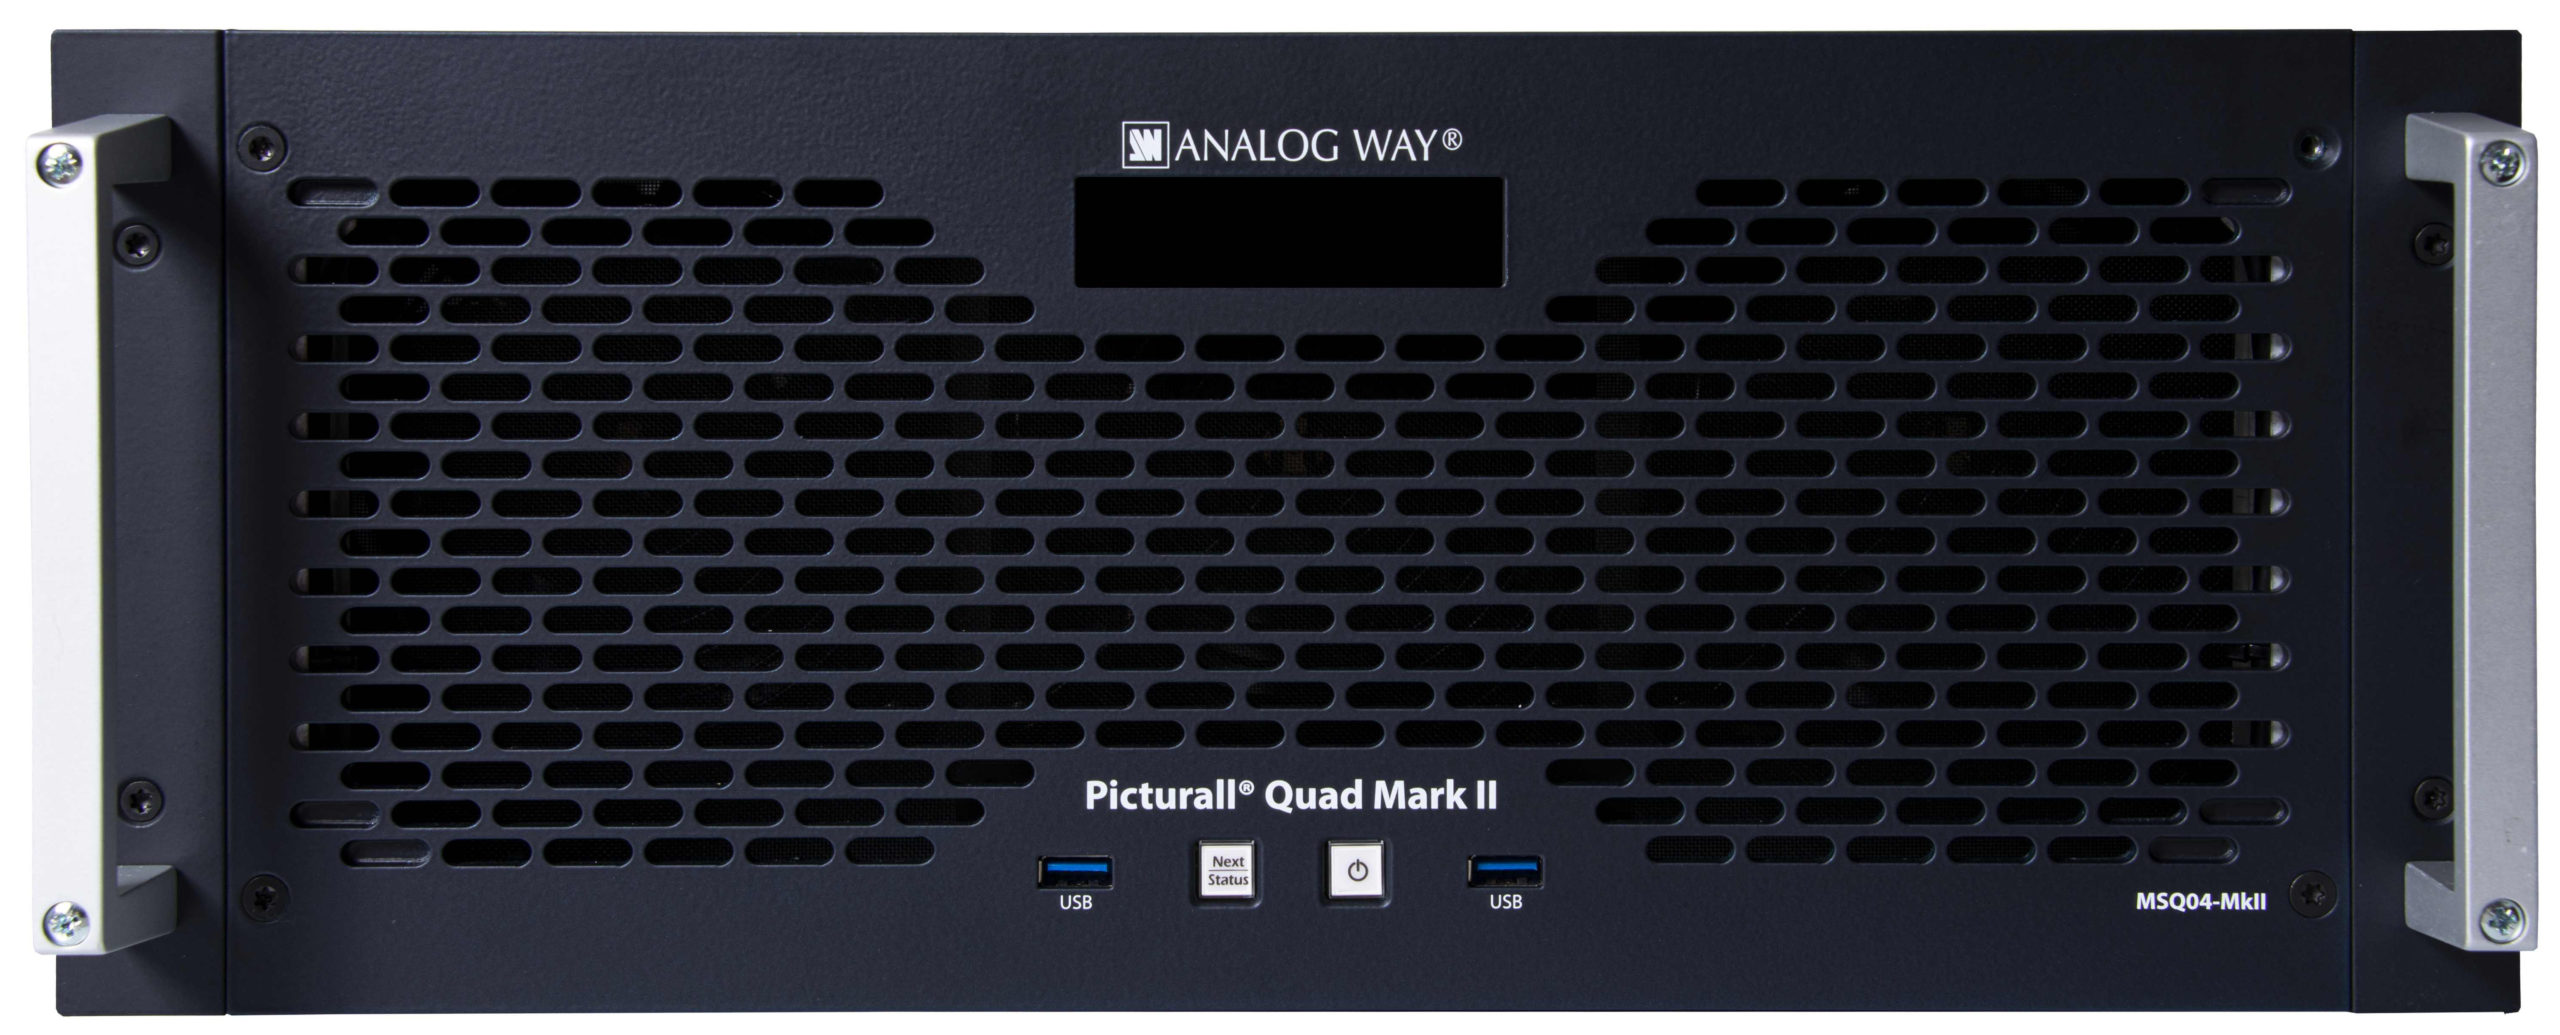 Analog Way Picturall Quad Mark 2